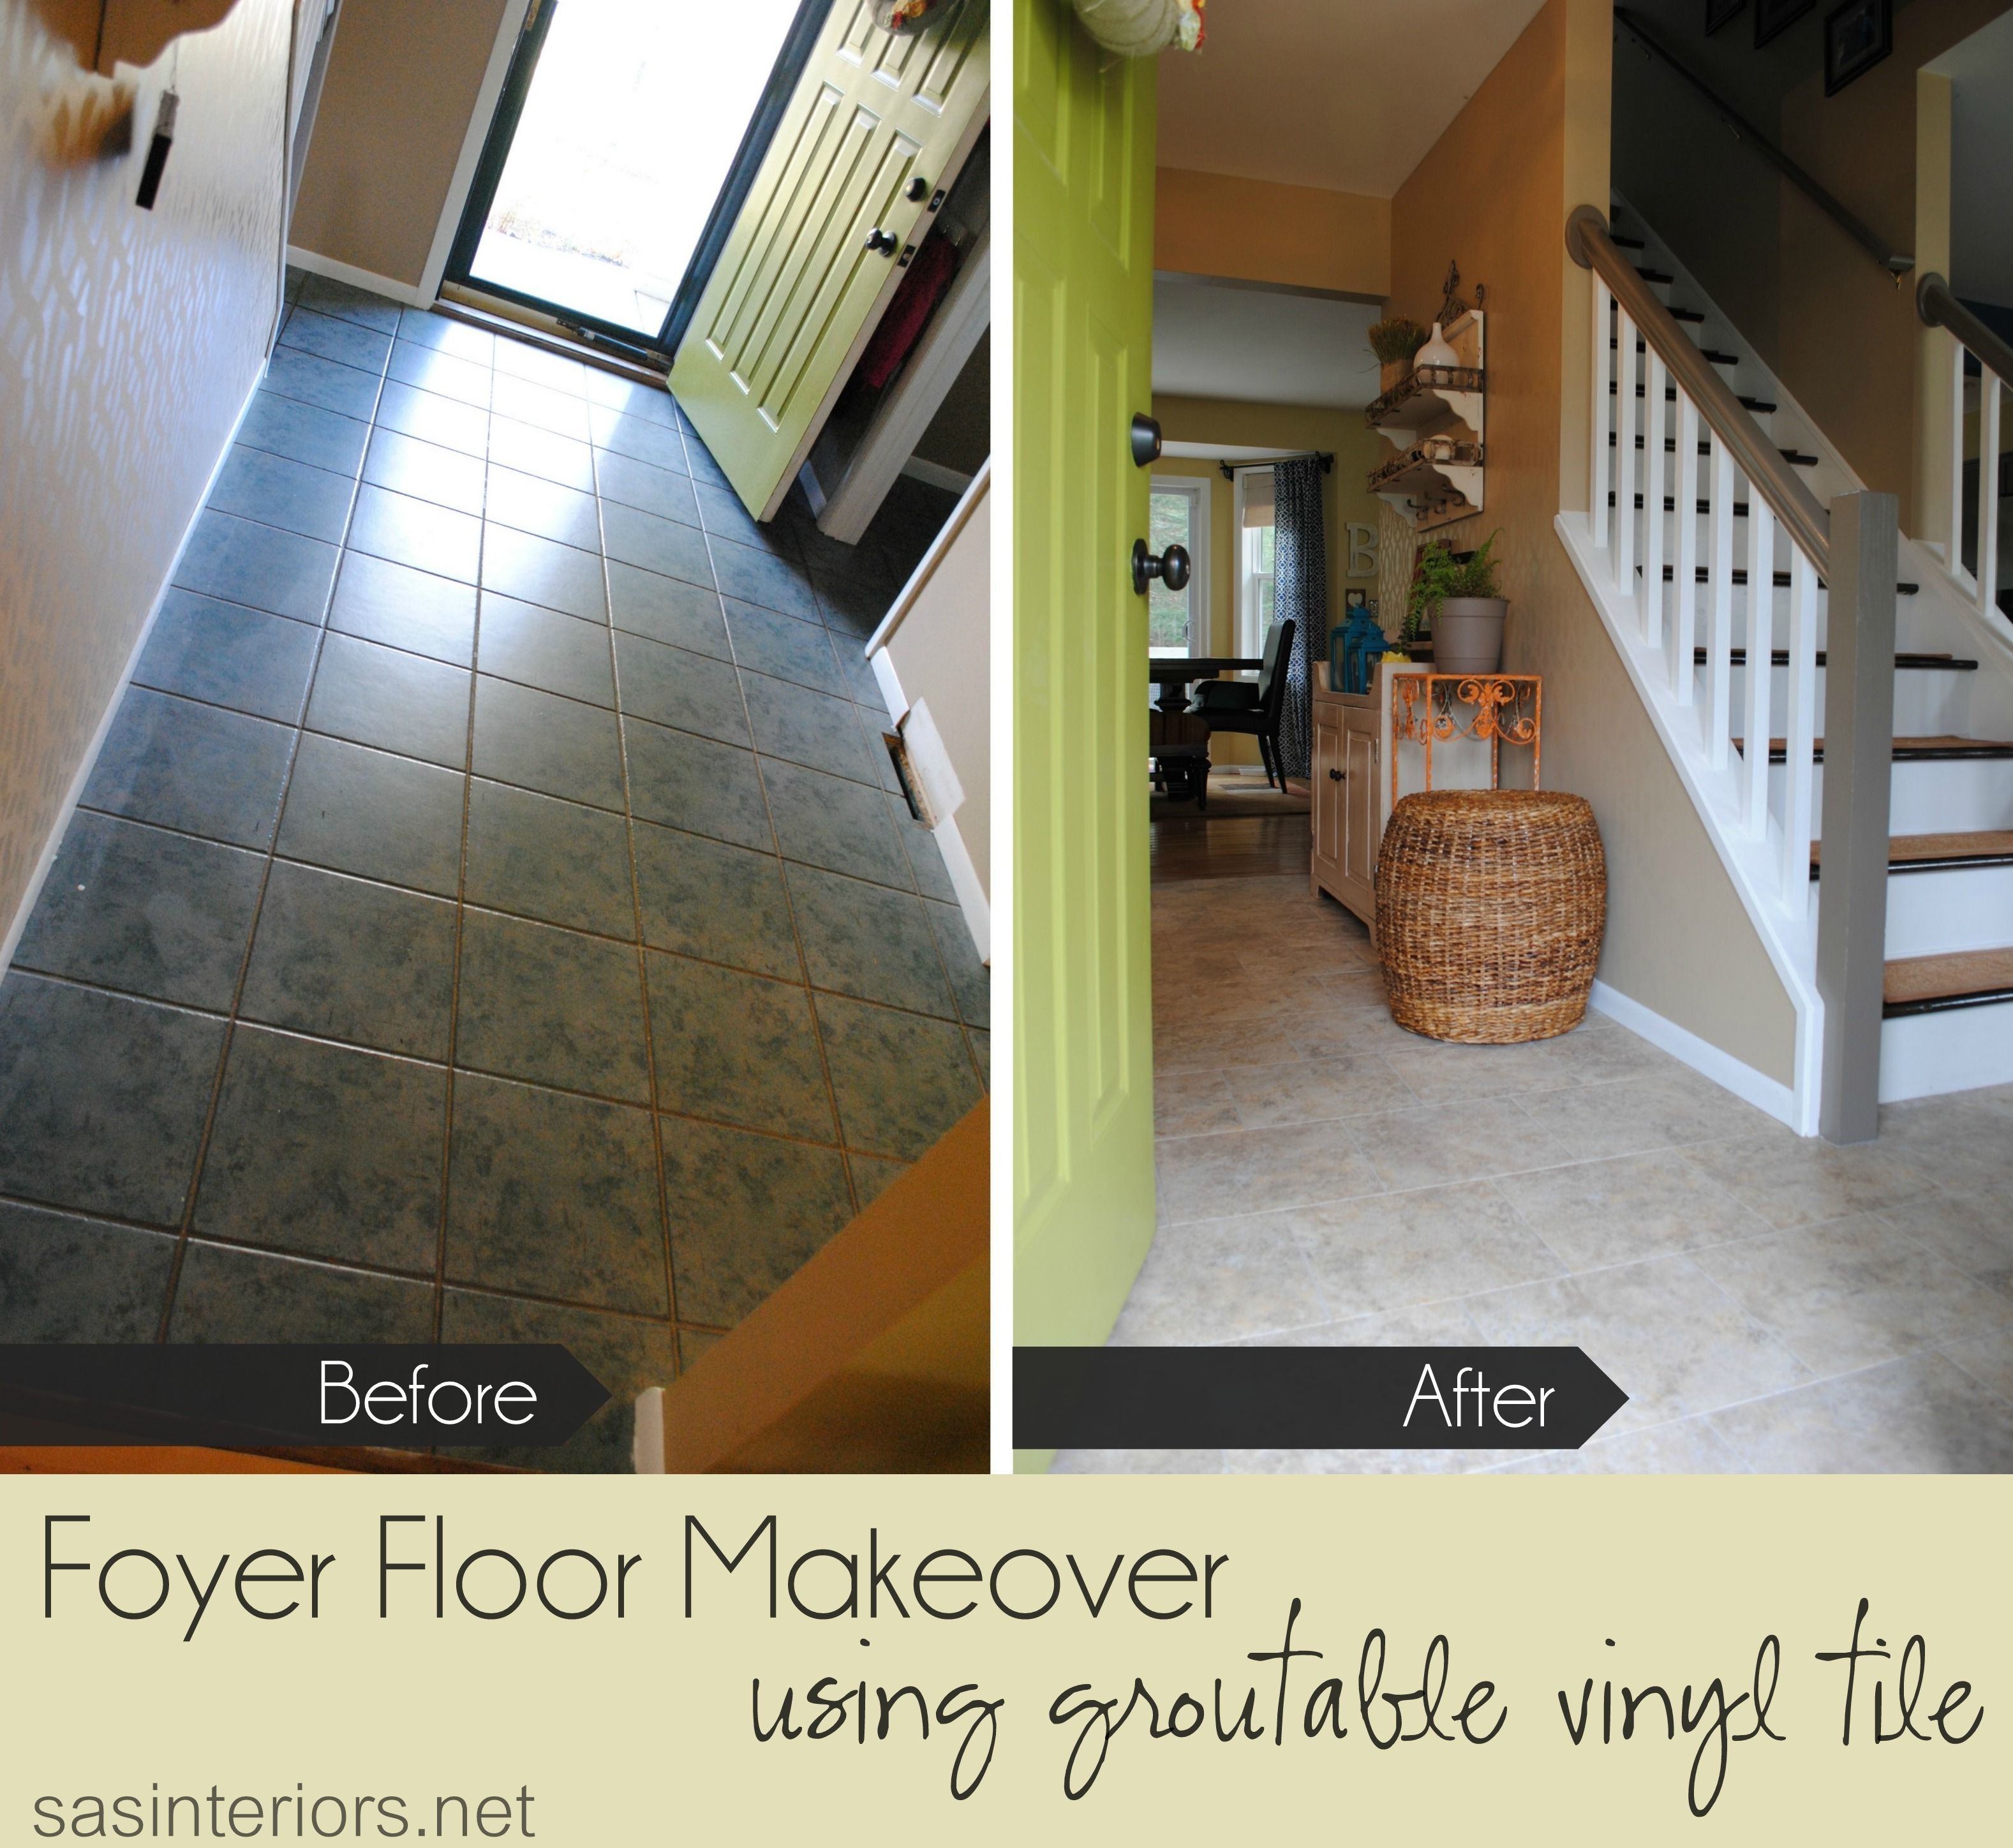 Do It Yourself How To Install Luxury Vinyl Tile That You Can Grout It Looks Just Like Ceramic Tile And Can Vinyl Tile Luxury Vinyl Tile Groutable Vinyl Tile